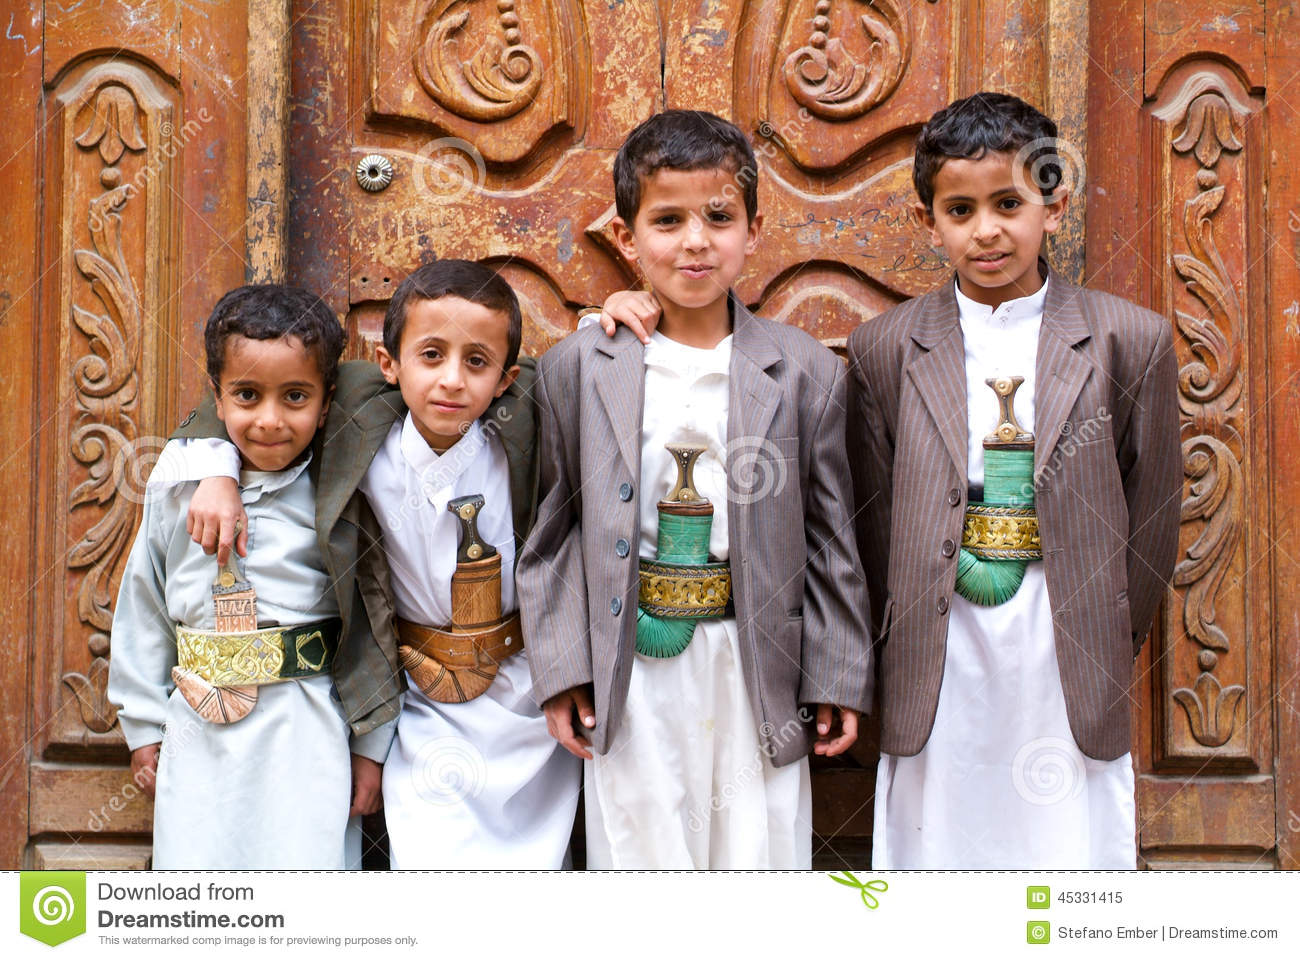 Yemen traditional clothing